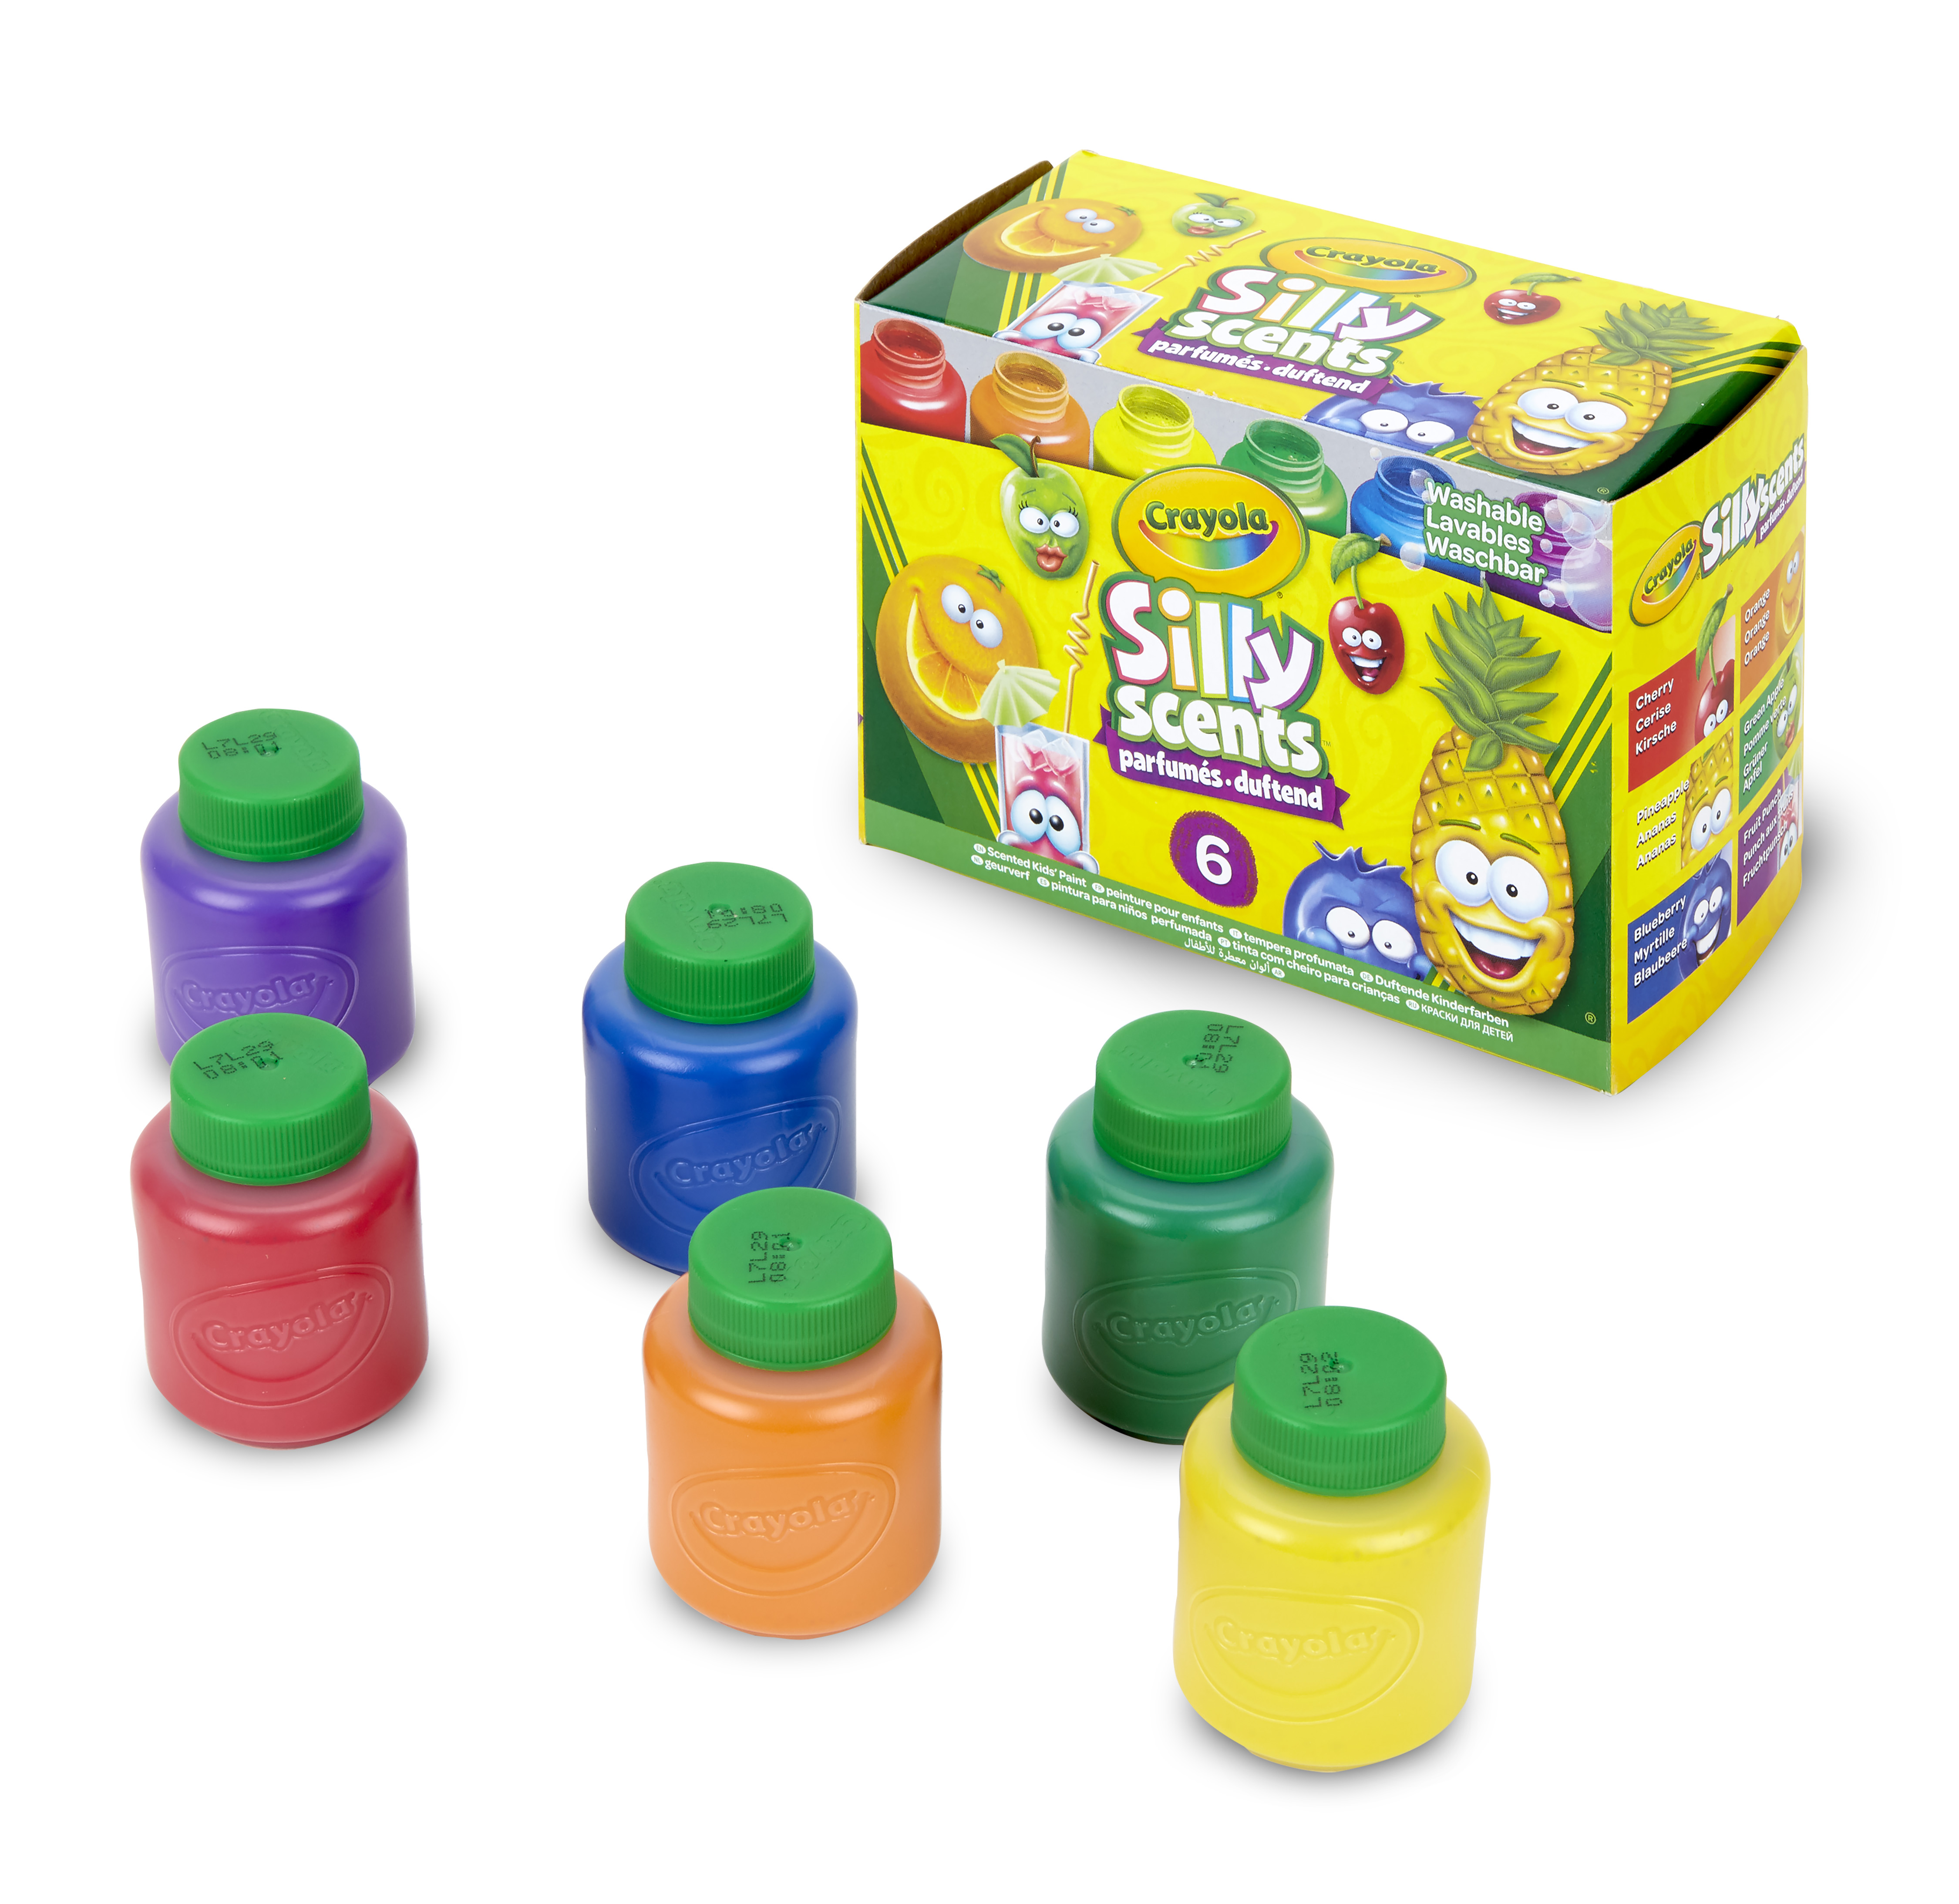 Crayola Silly Scents 6 Count Washable Kids Paint